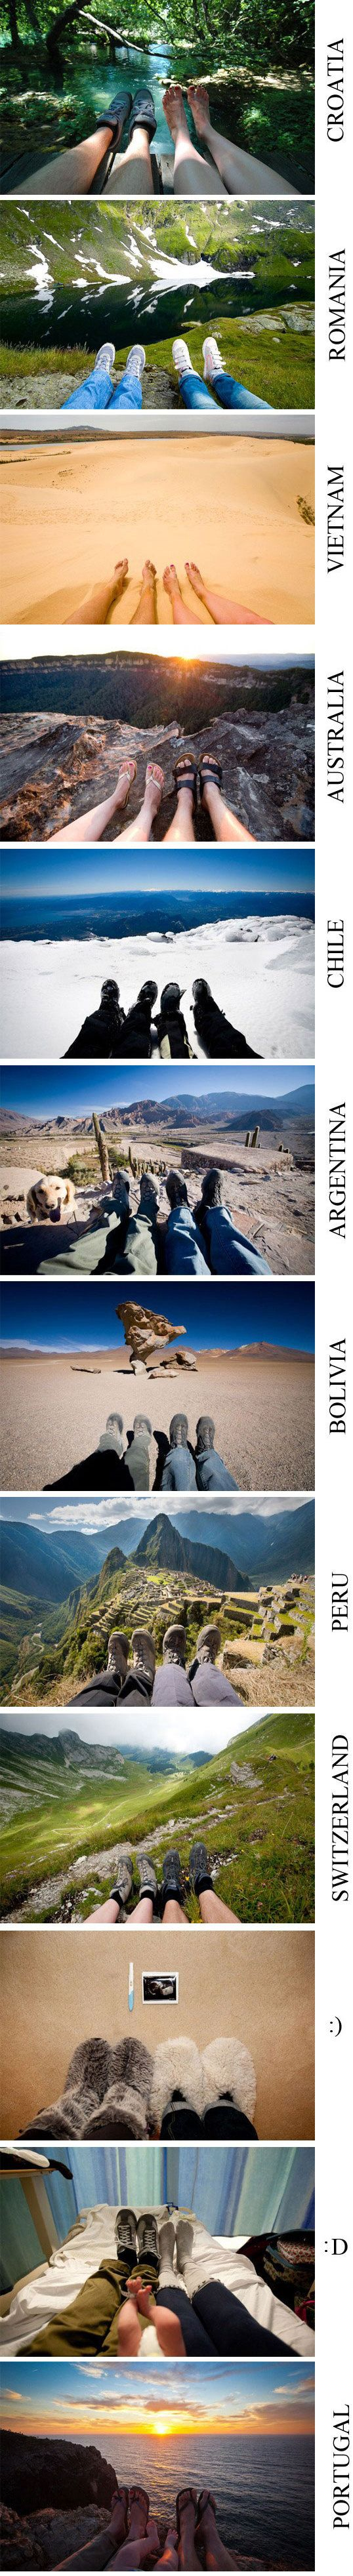 Photo Story with feet- it would be awesome to be wearing the same pair of shoes each time.